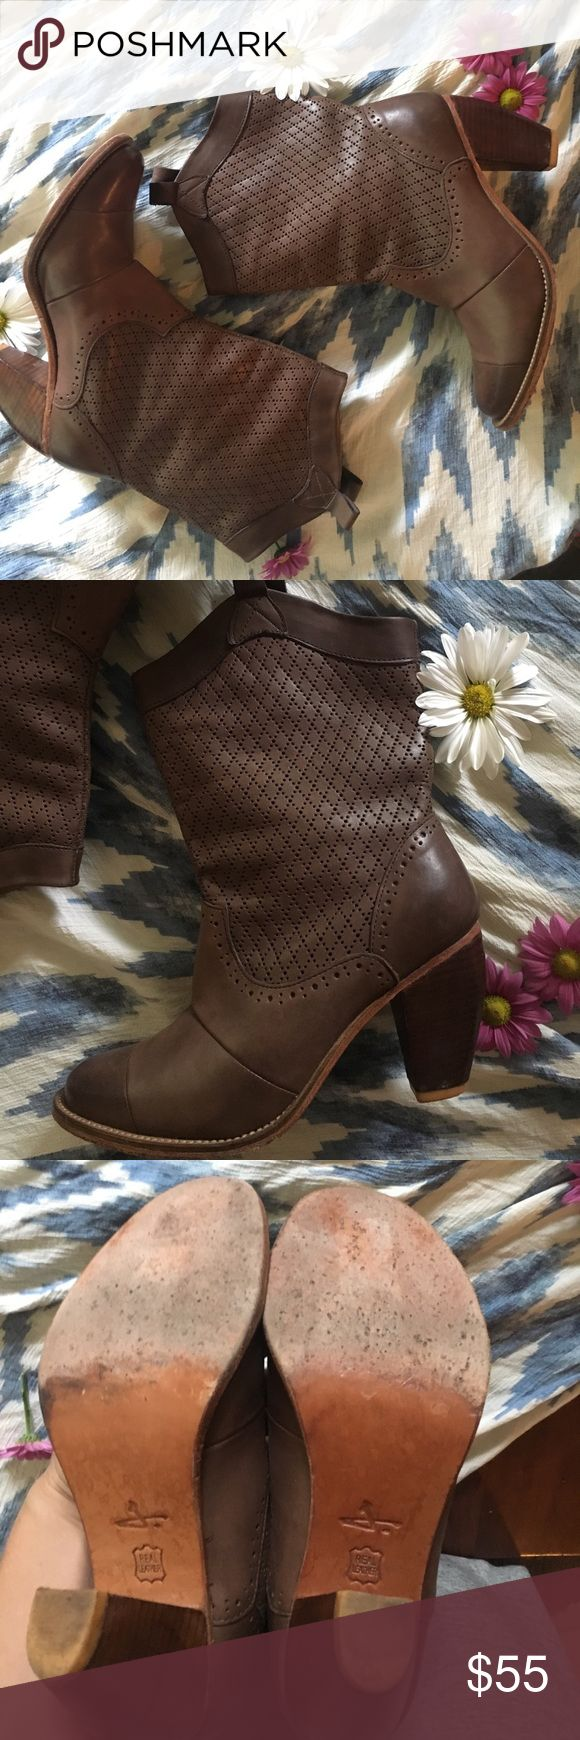 J shoes brown leather boots These cowgirl inspired boots will have your summer dresses turning heads. They are in amazing condition with little wear and tear, they are about a 7-7.5 3.5 inch heel. There Is an eyelet detail cutout around the body of the bo